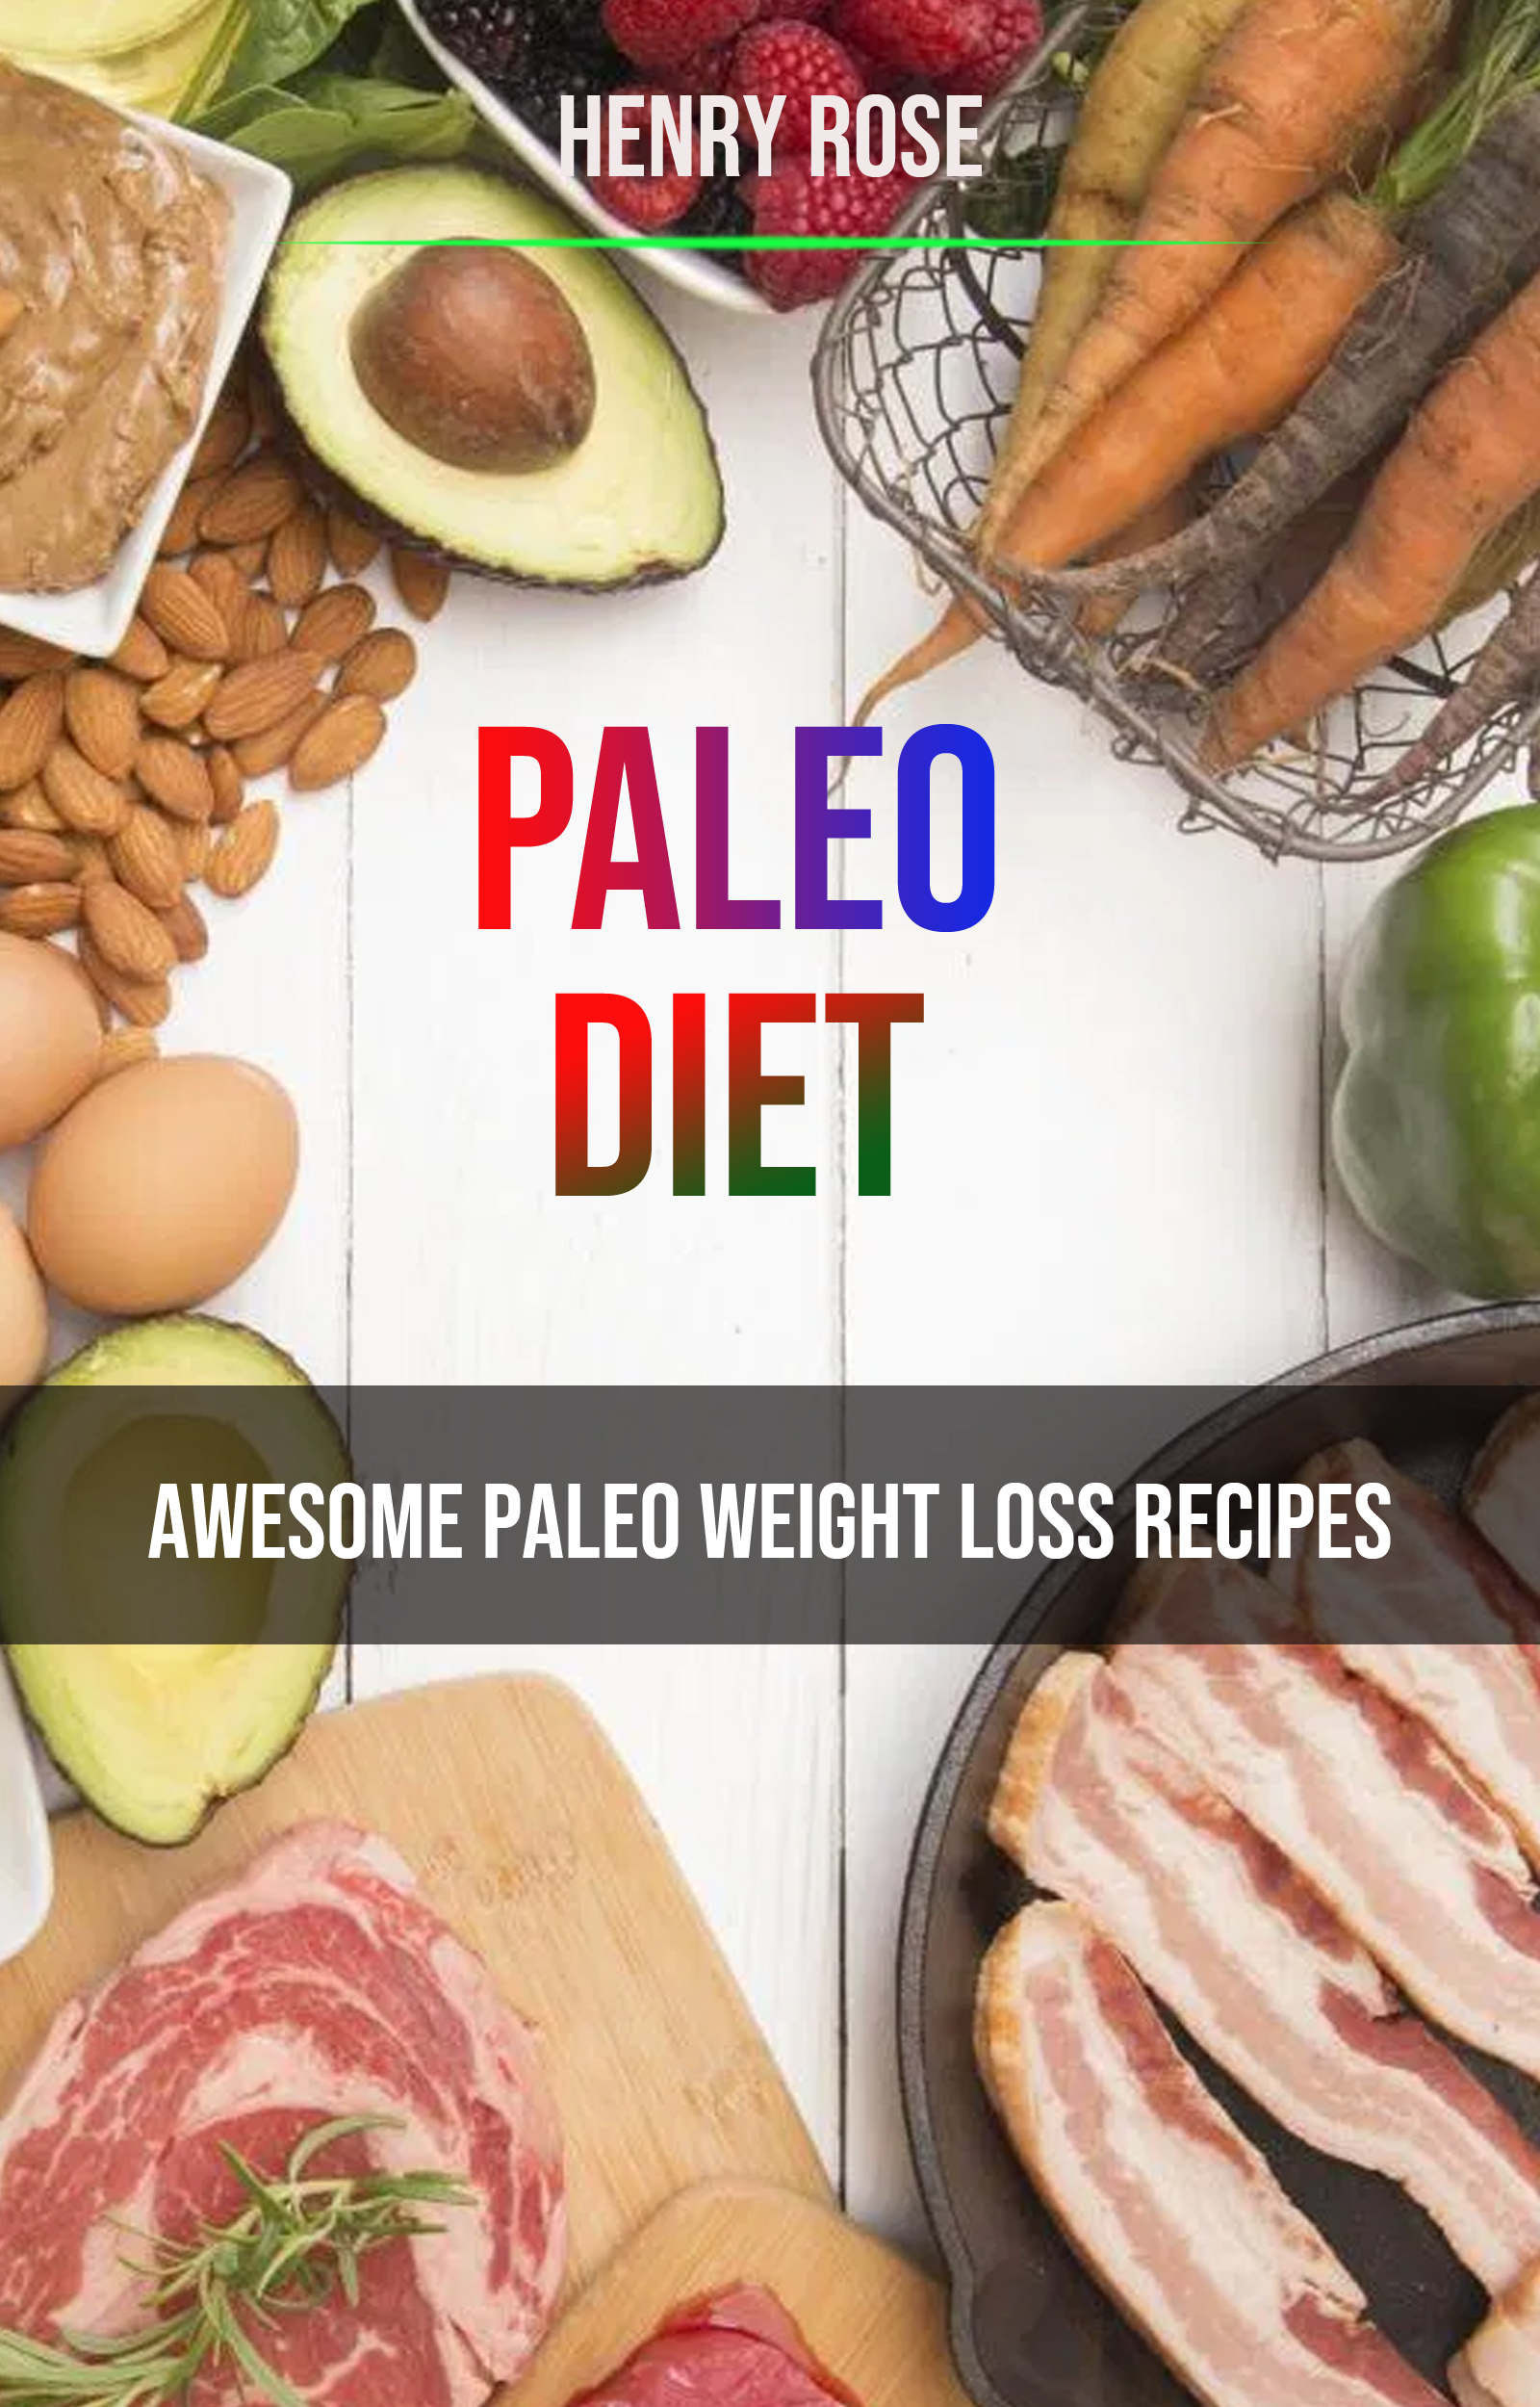 Paleo diet: awesome paleo weight loss recipes